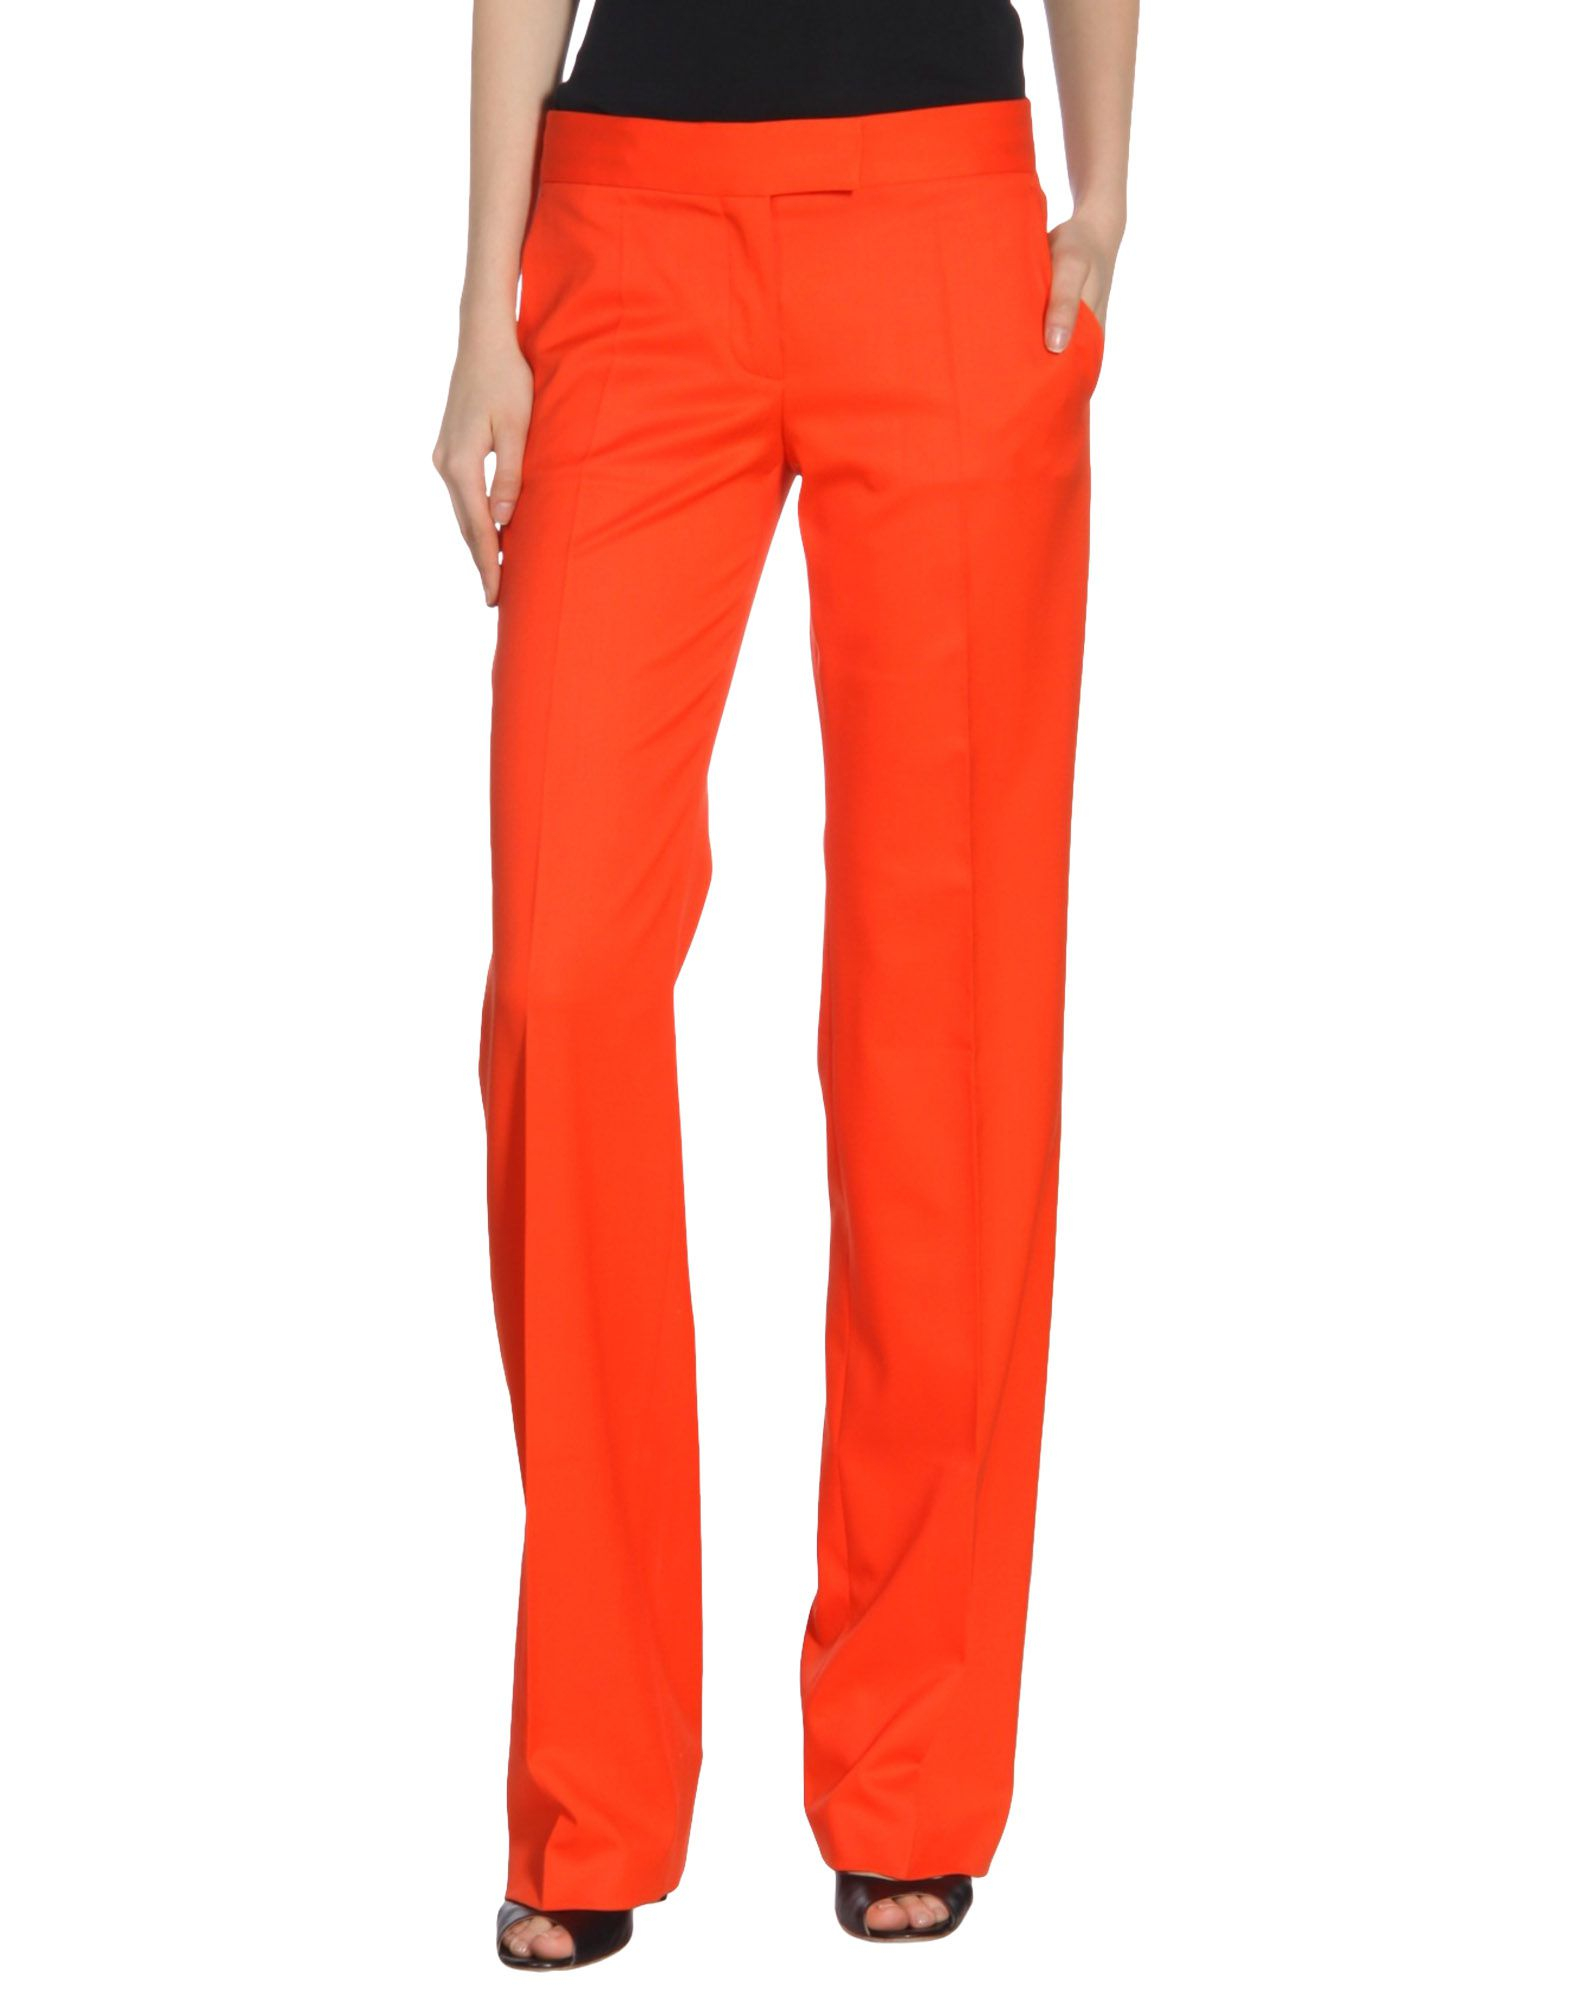 Original Brand Bright Orange Skinny Leg Pants Women